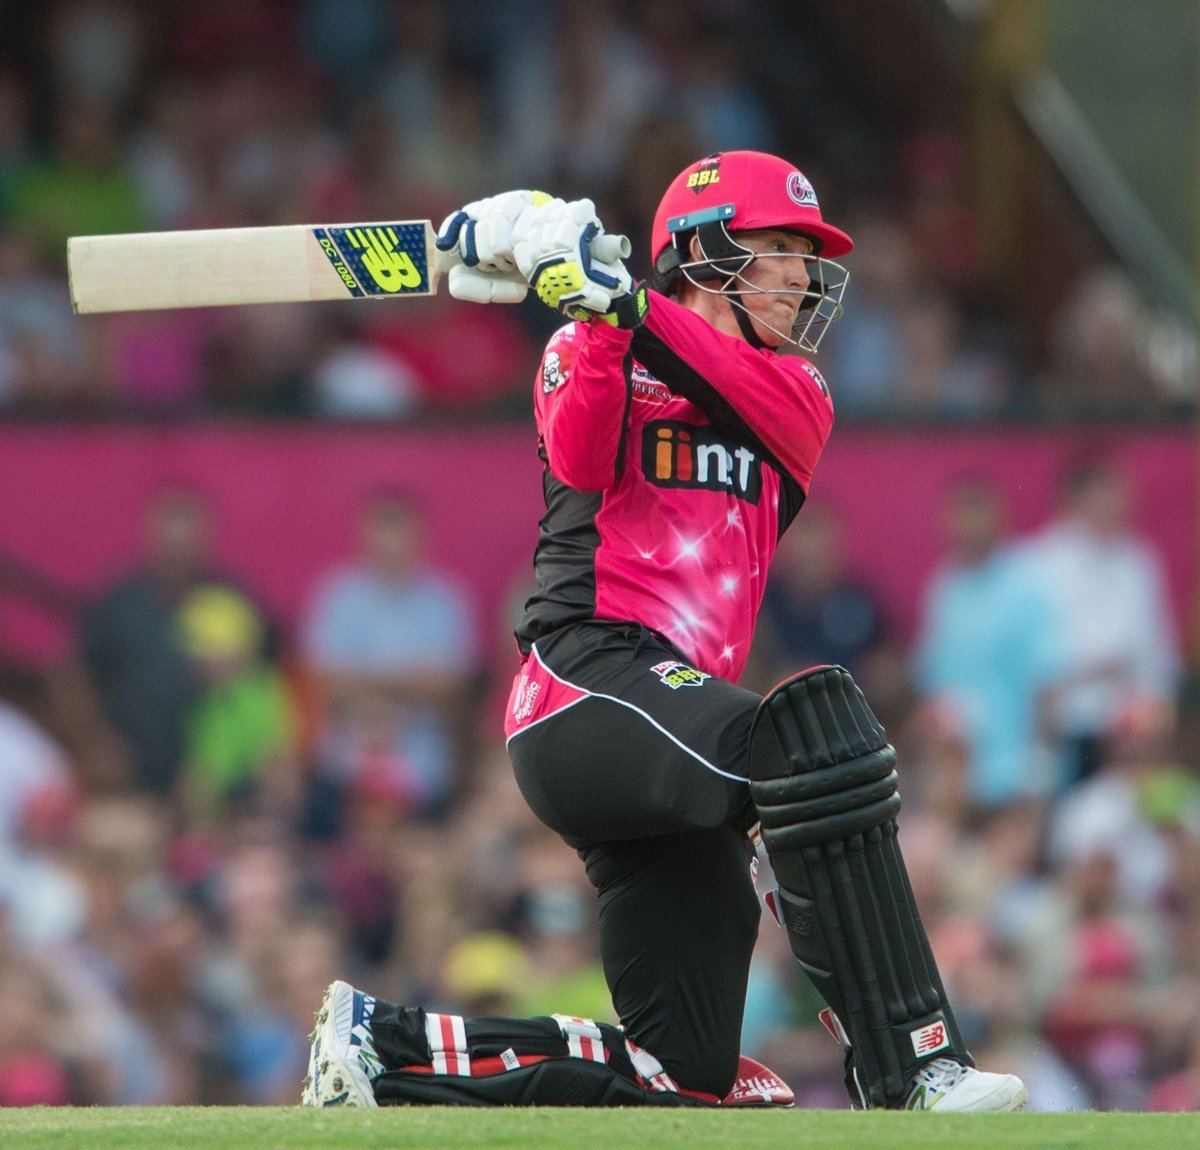 Nic Madison, who also suffers from Mental health issues, batting in the big bash